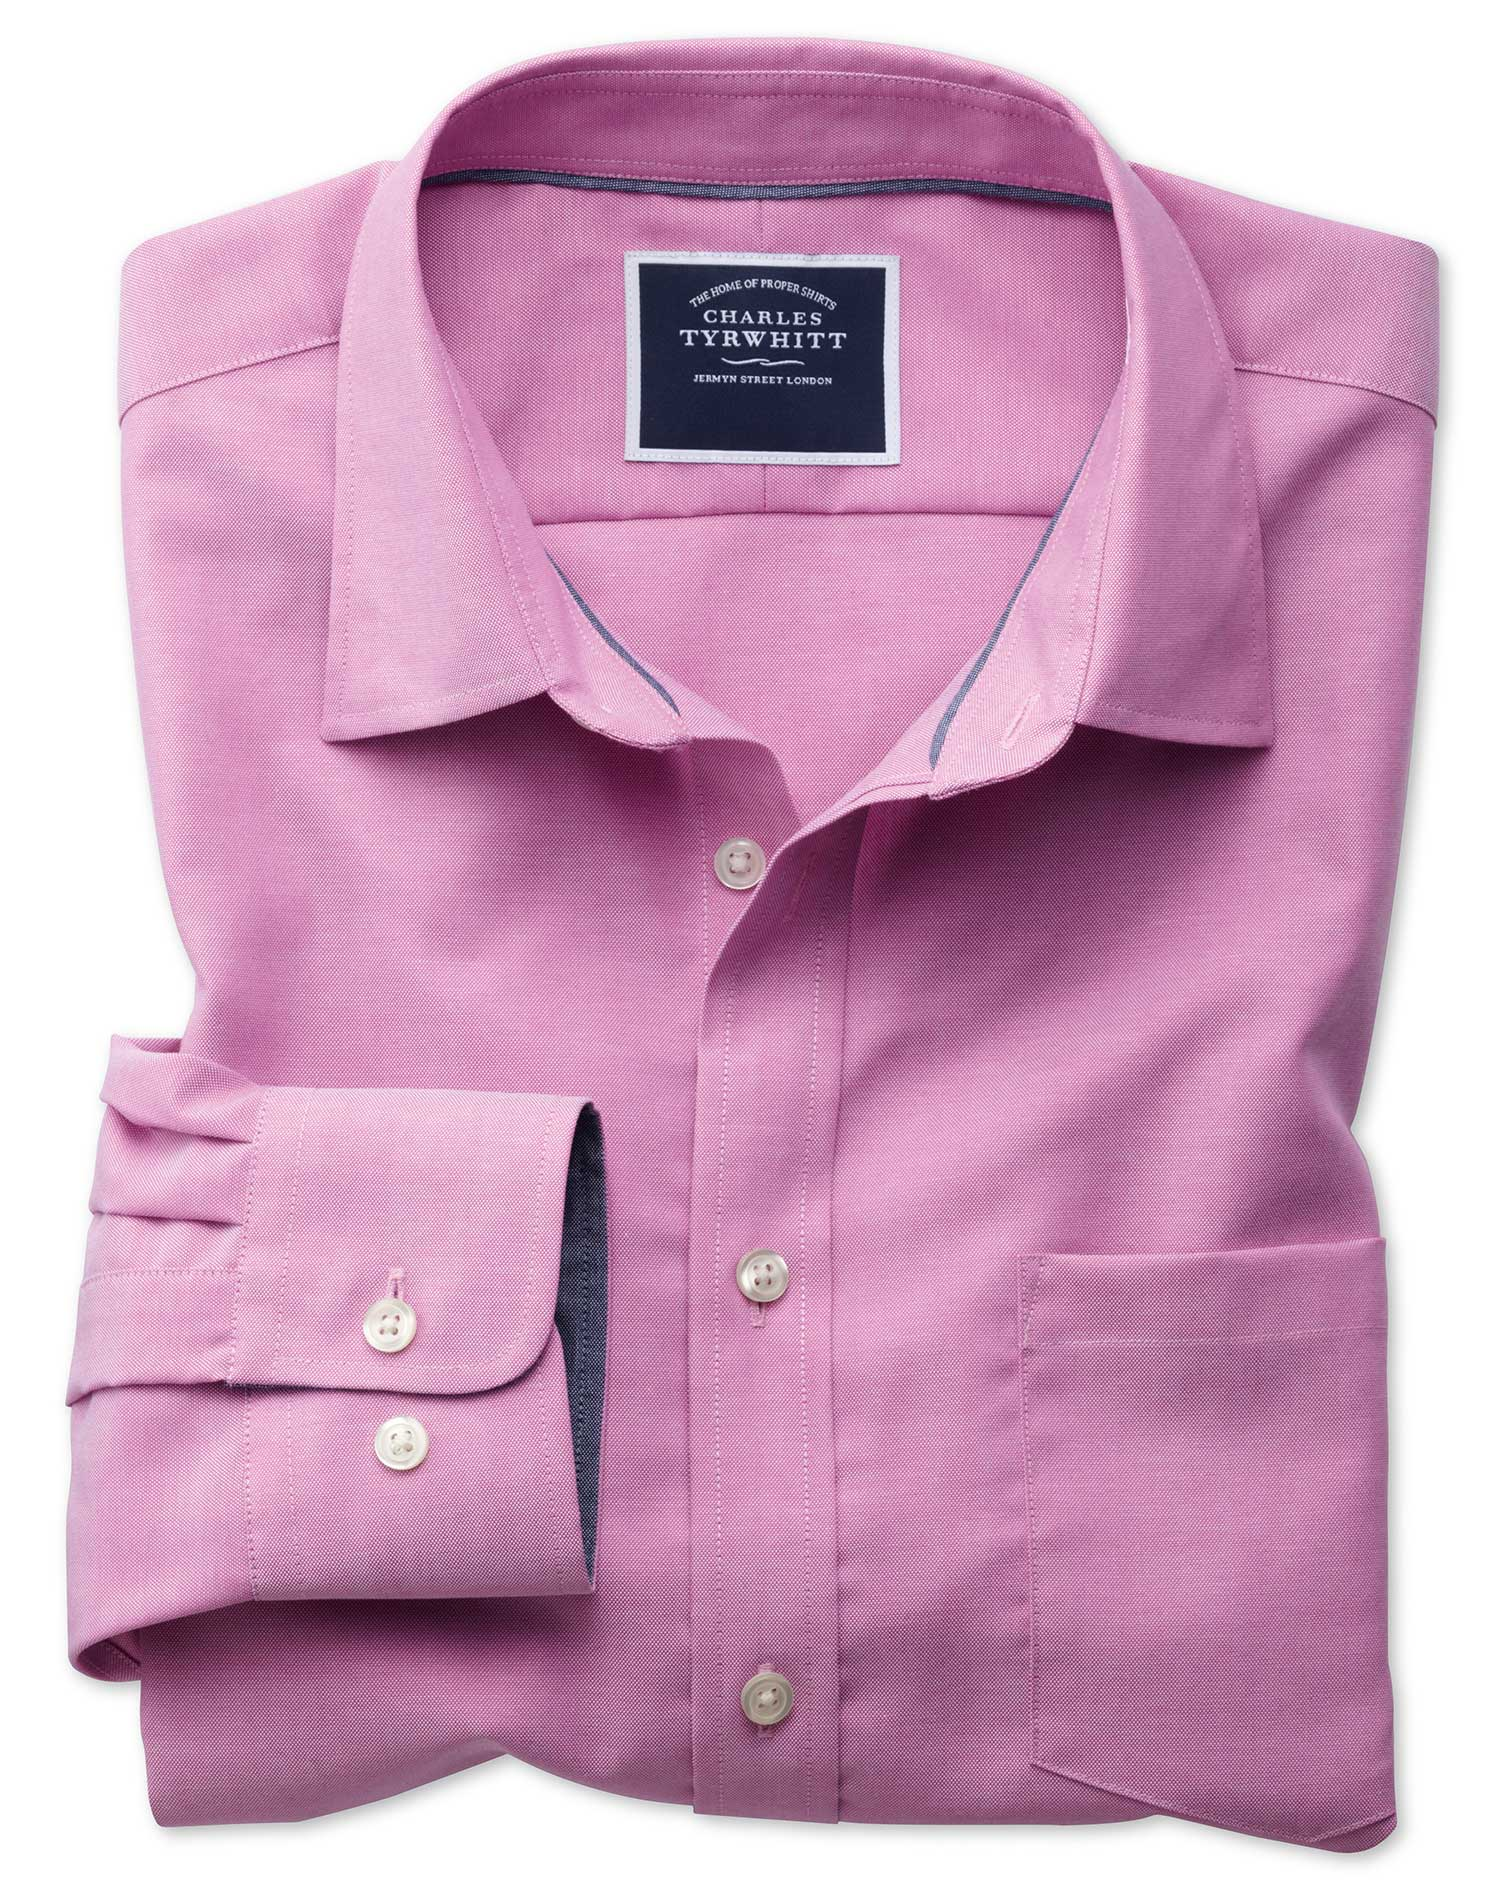 Slim Fit Non-Iron Oxford Dark Pink Plain Cotton Shirt Single Cuff Size Large by Charles Tyrwhitt